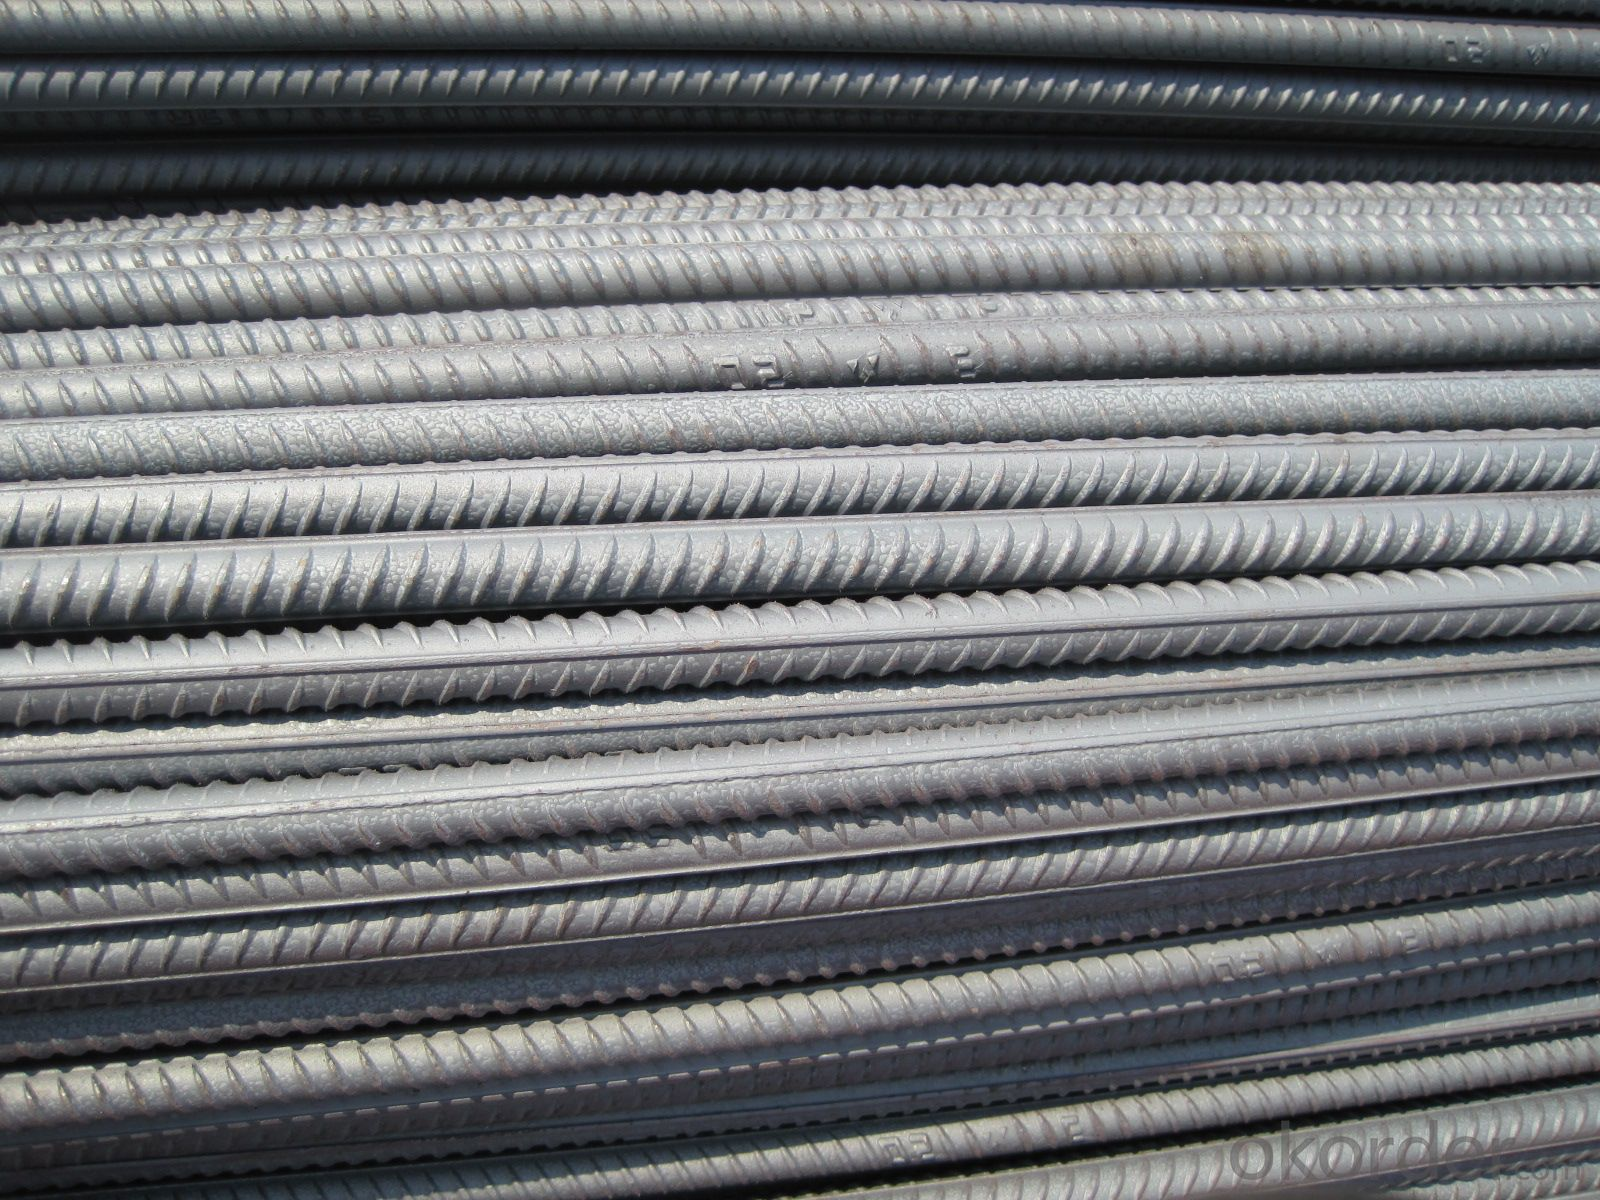 Buy Hot Rolled Carbon Steel Rebar 16-25mm with High Quality Price